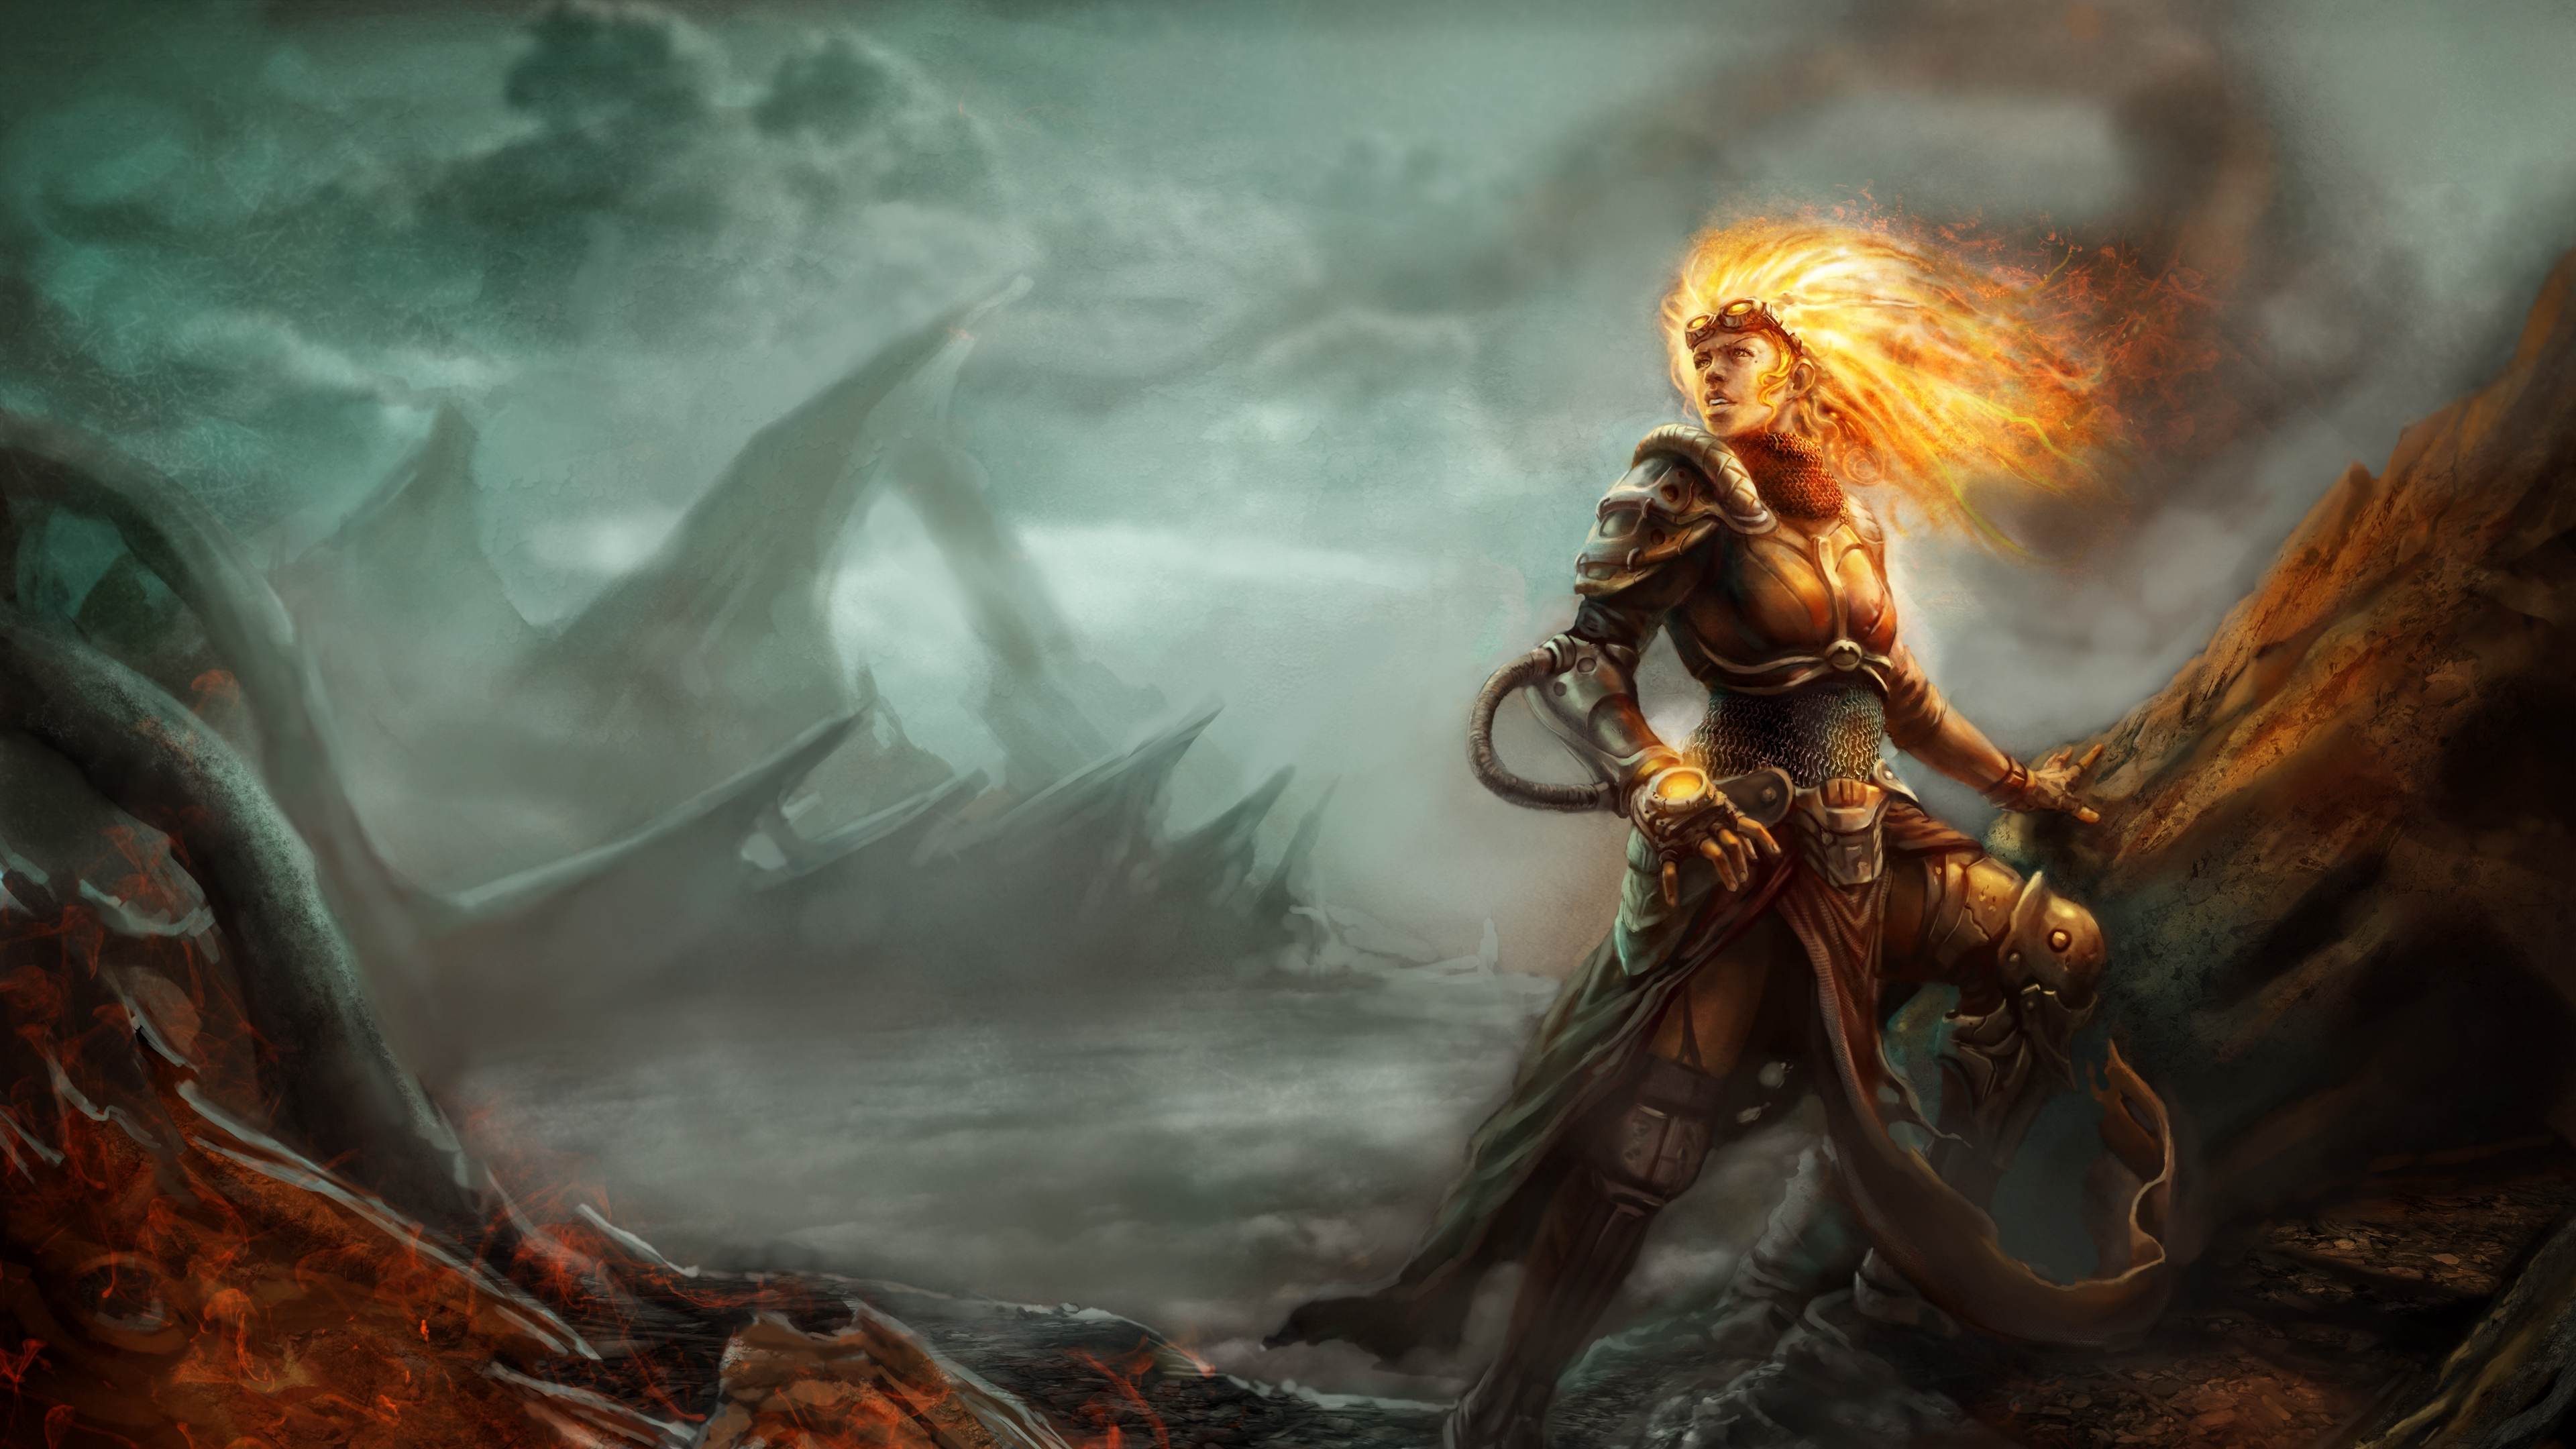 Magic The Gathering Wallpaper Hd Posted By Samantha Peltier